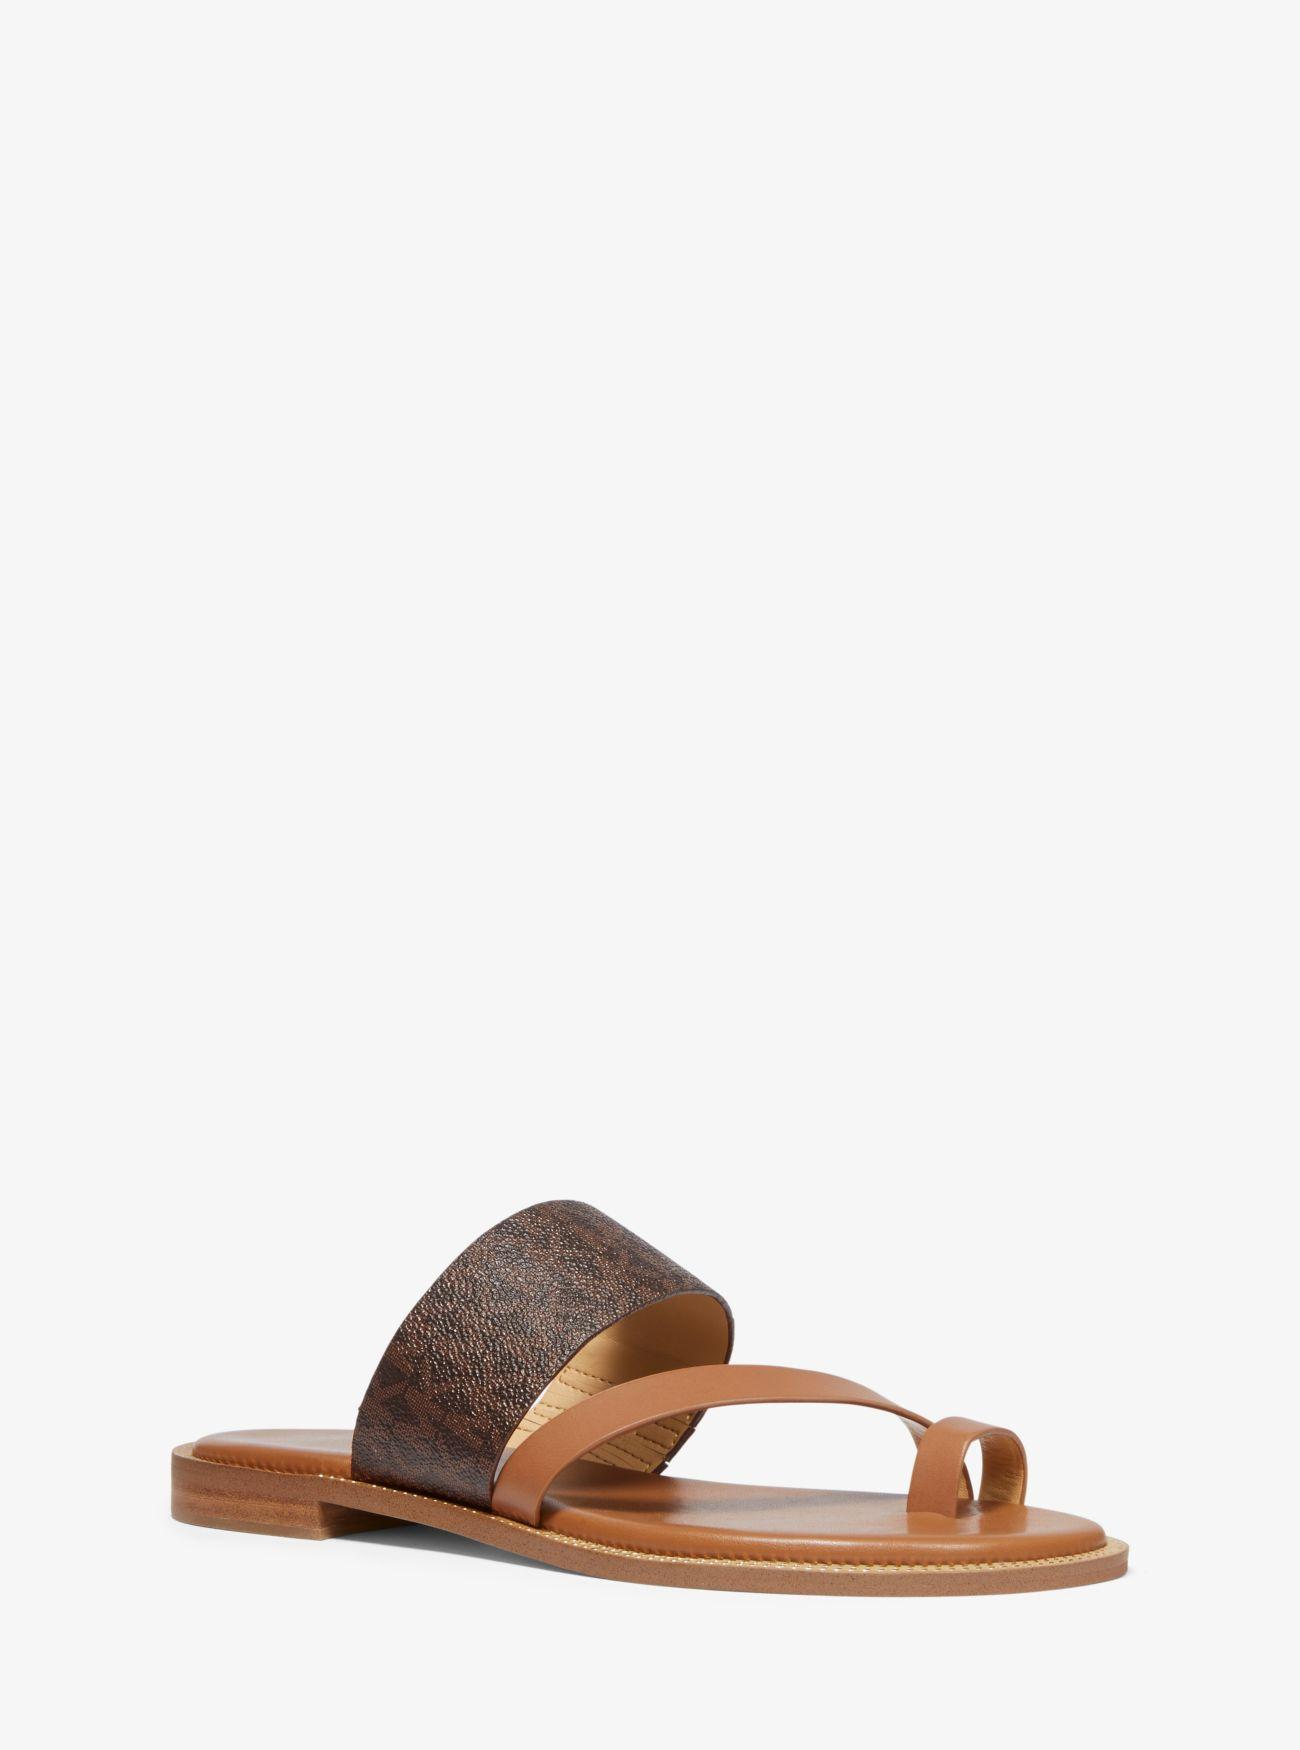 7a8c4e3d7680 Lyst - Michael Kors Pratt Logo And Leather Sandal in Brown